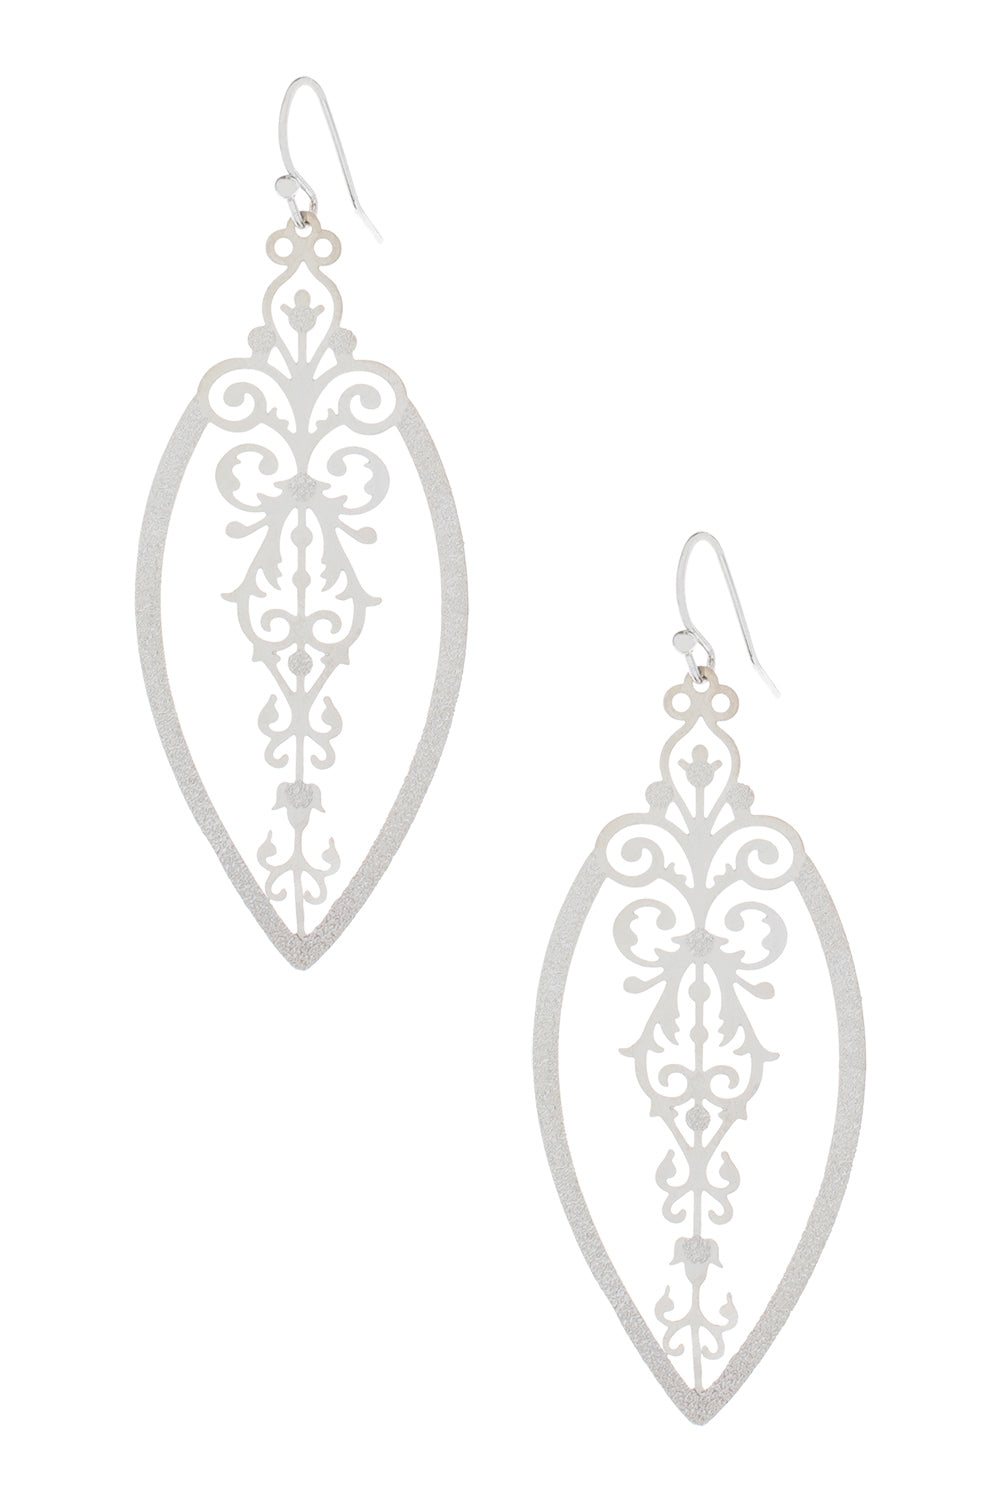 Type 2 Eloquent Leafs Earrings